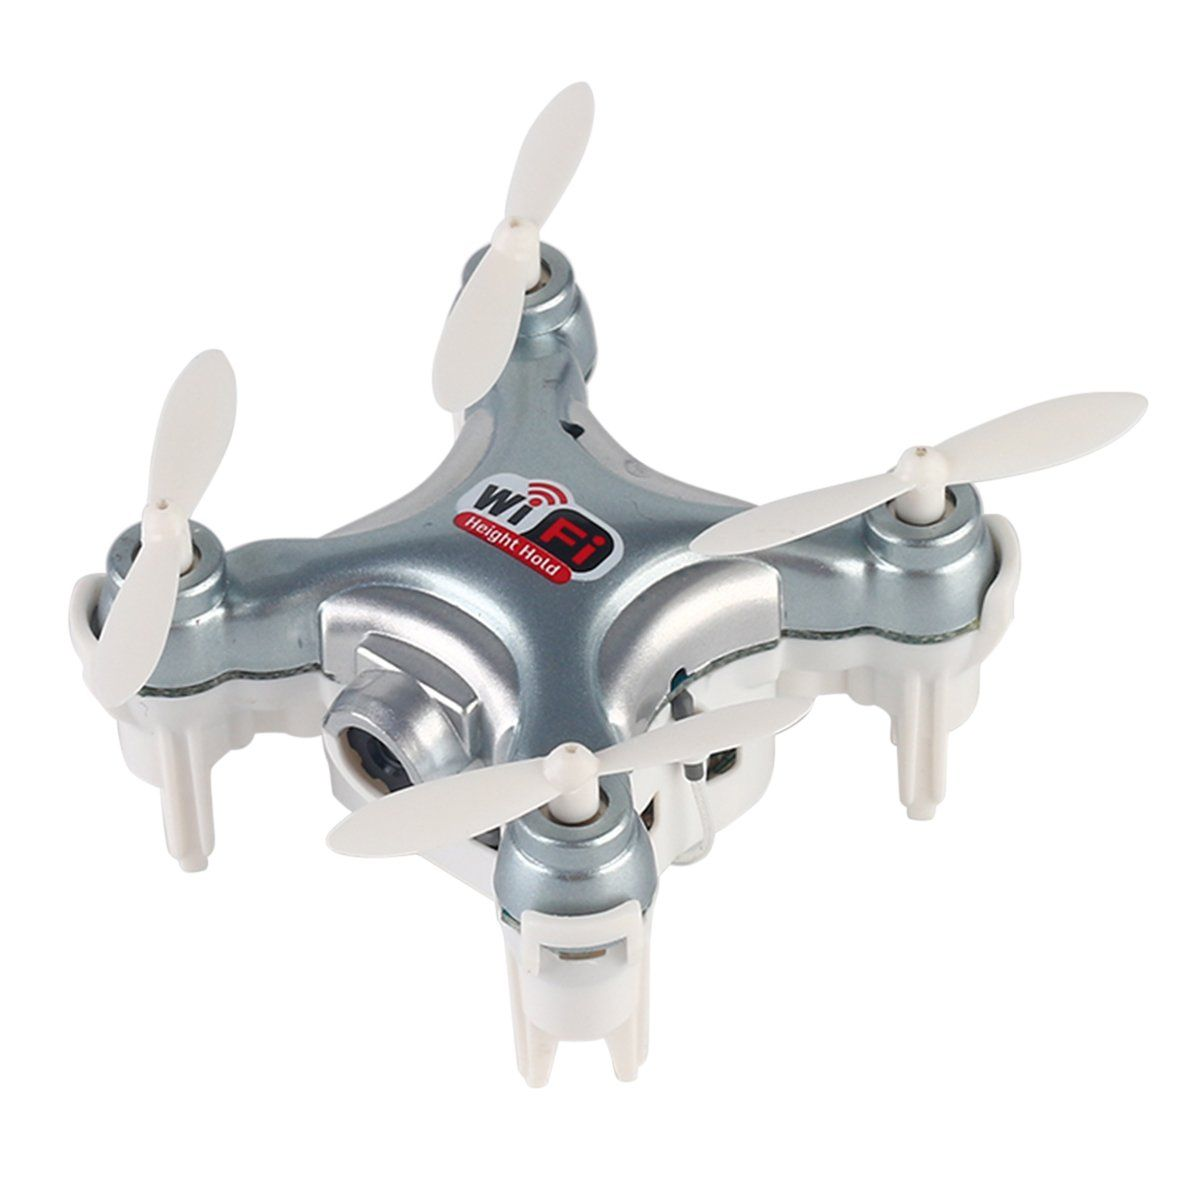 Pin On Drones